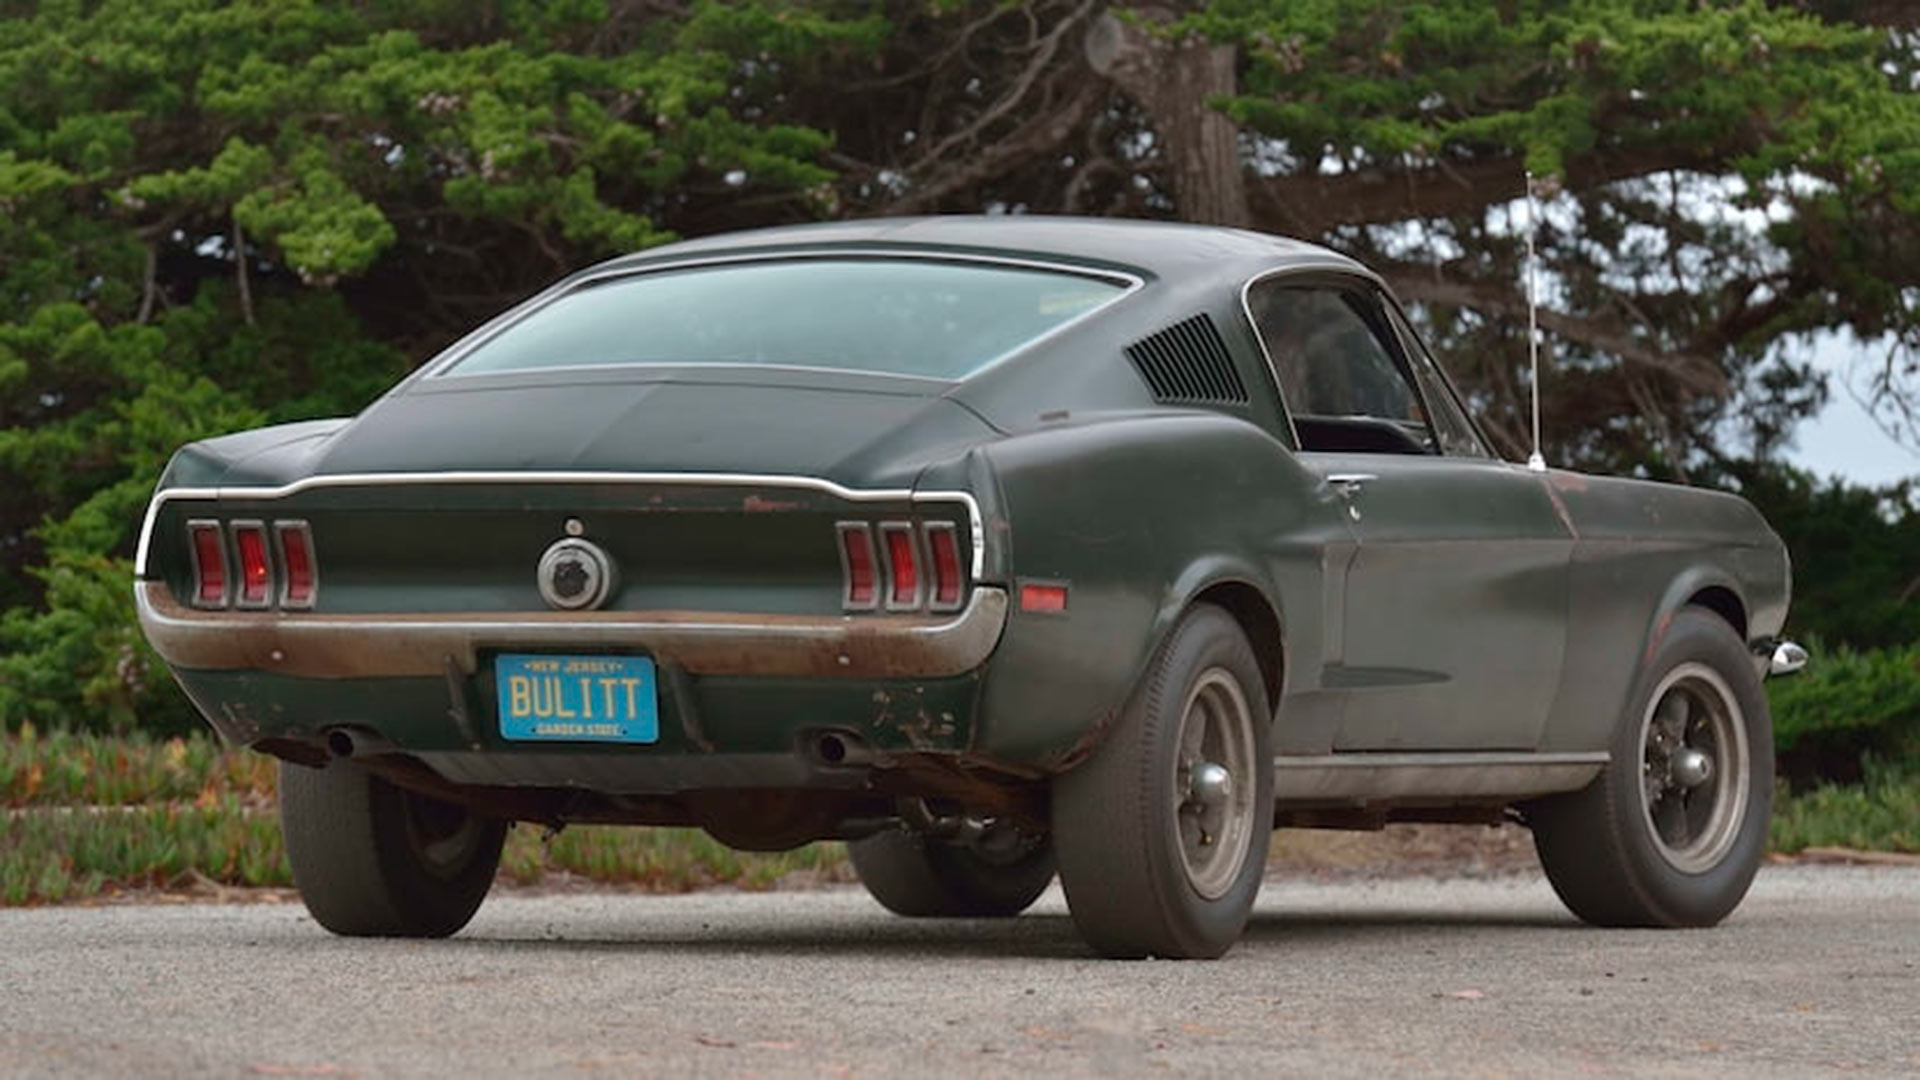 Ford Bullitt Mustang Gt Hero Car Sells For Incredible 3 4 Million At Auction Motoring Research